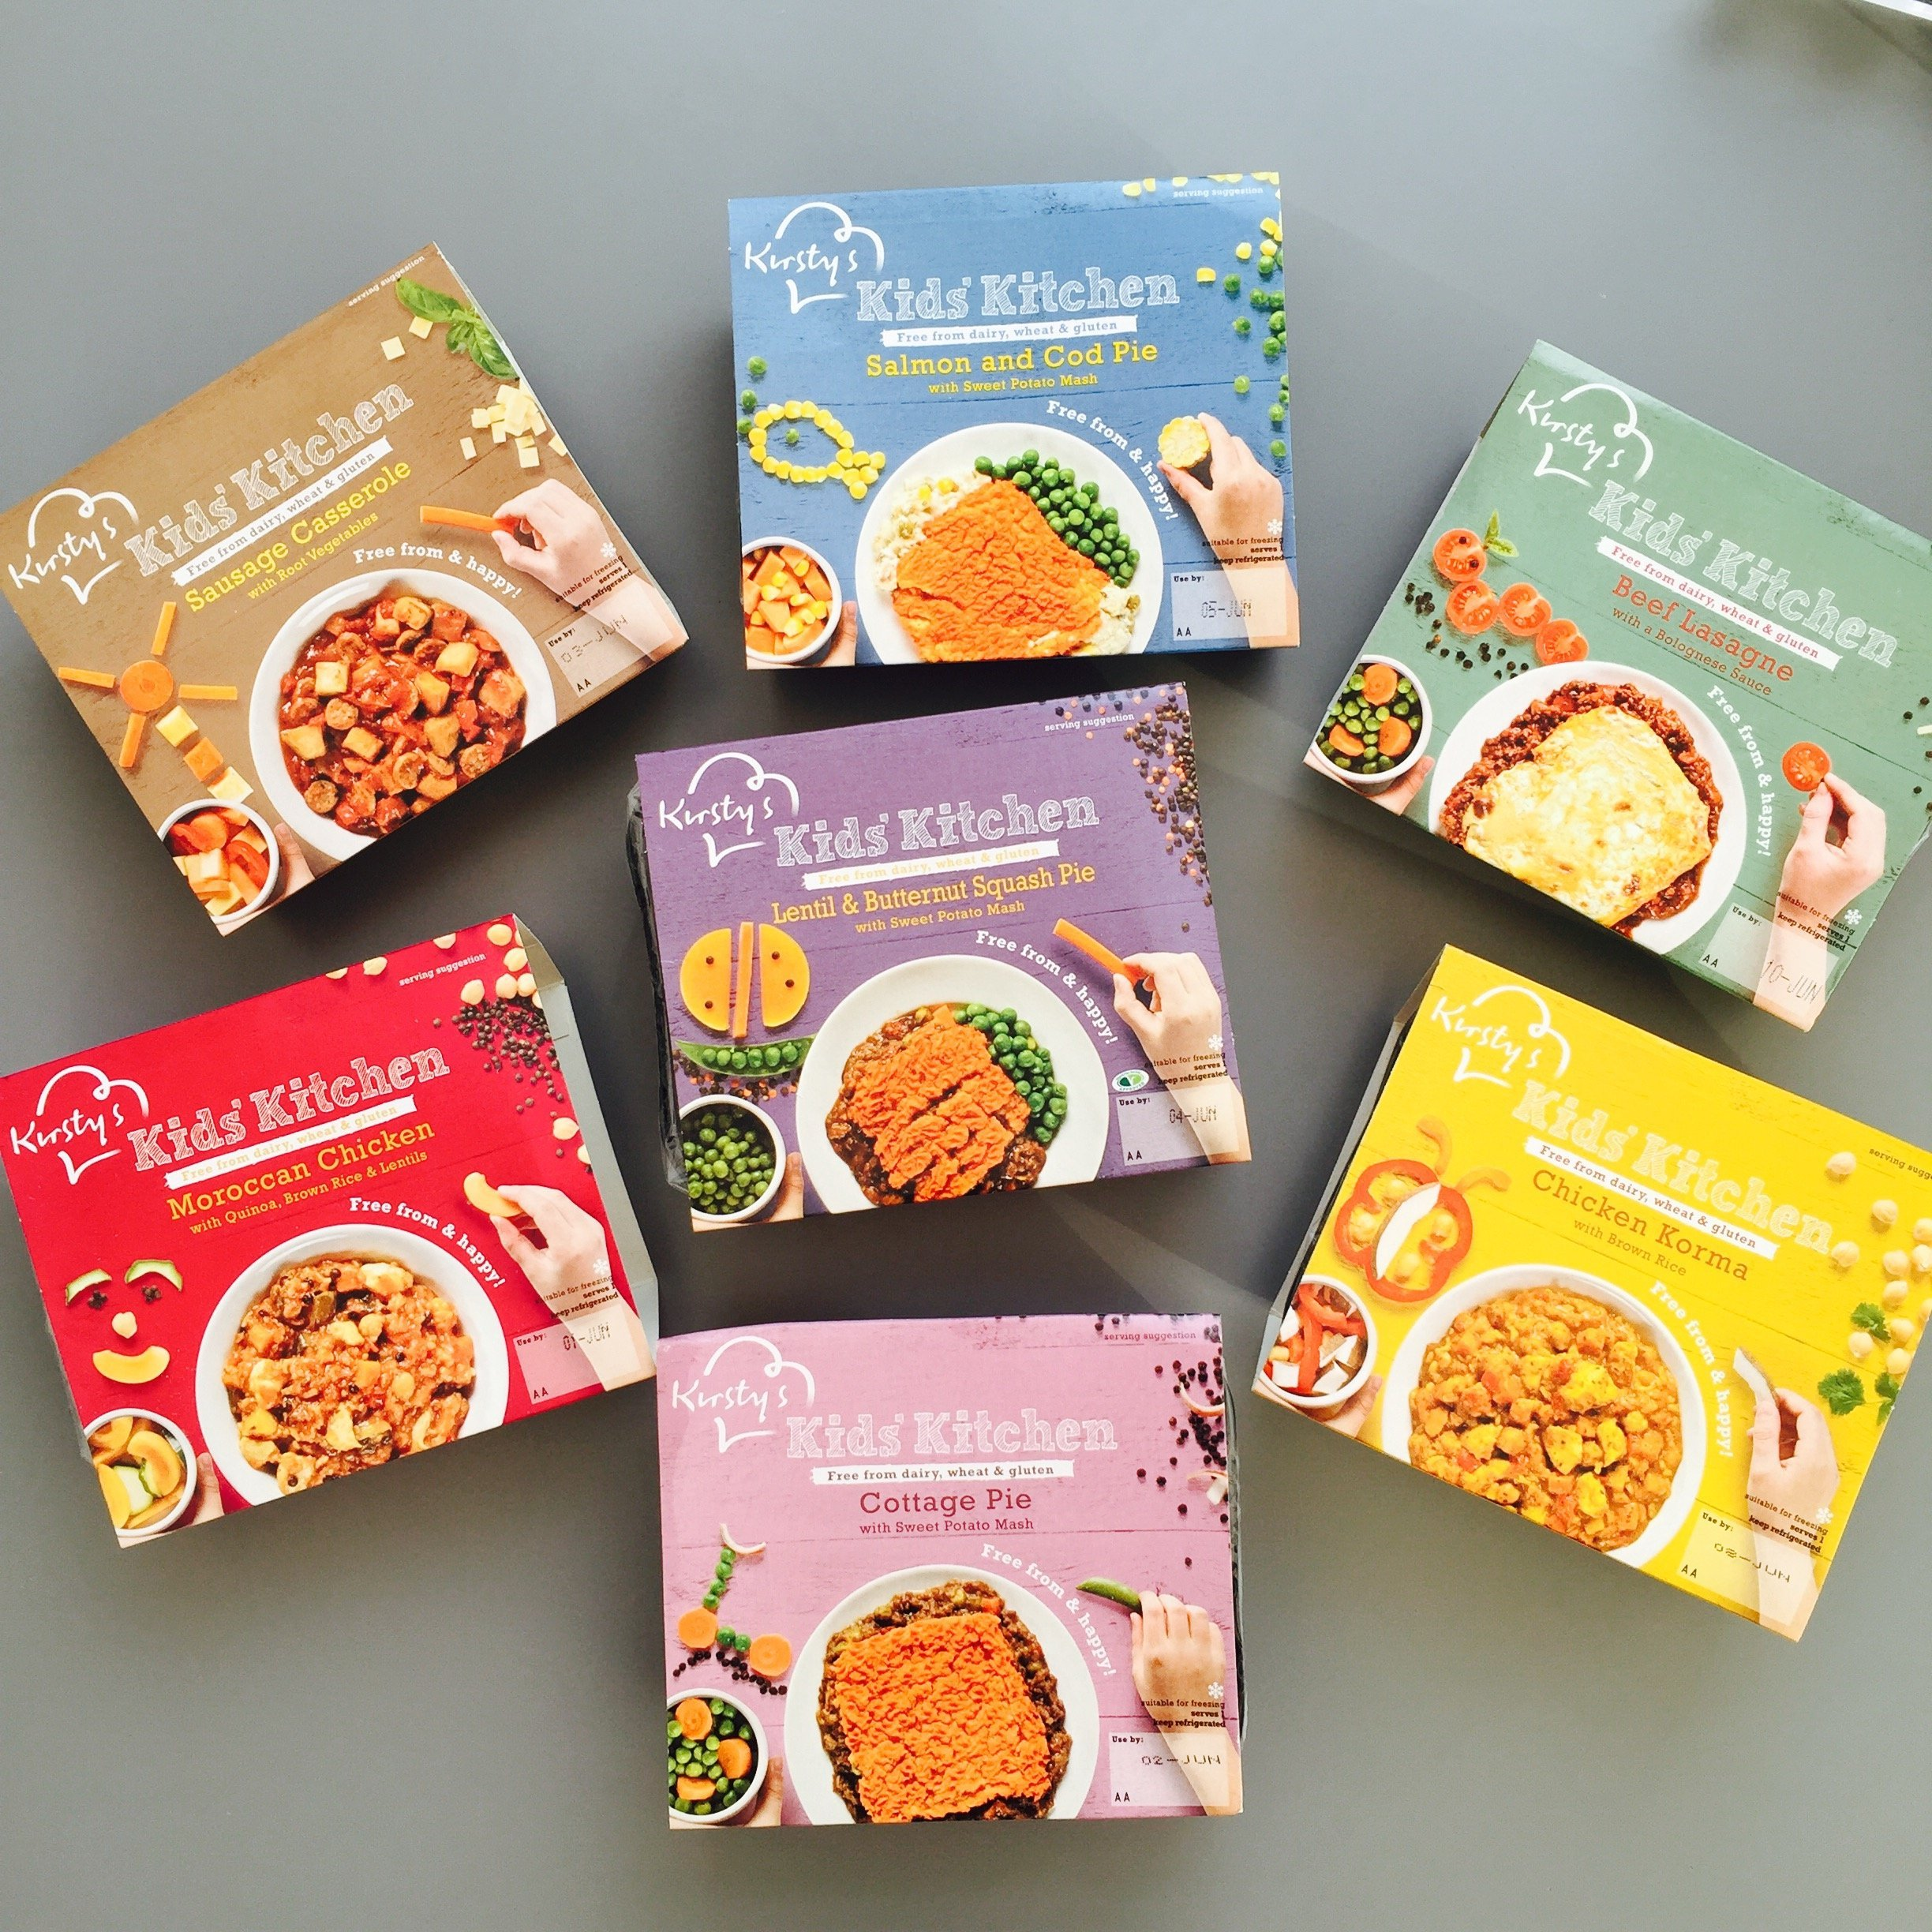 kirsty's kids' kitchen ready meals, free from ready meal s for kids, review of free from kids meals, kirsty's kids meals reviews, easy family food from daisies and pie